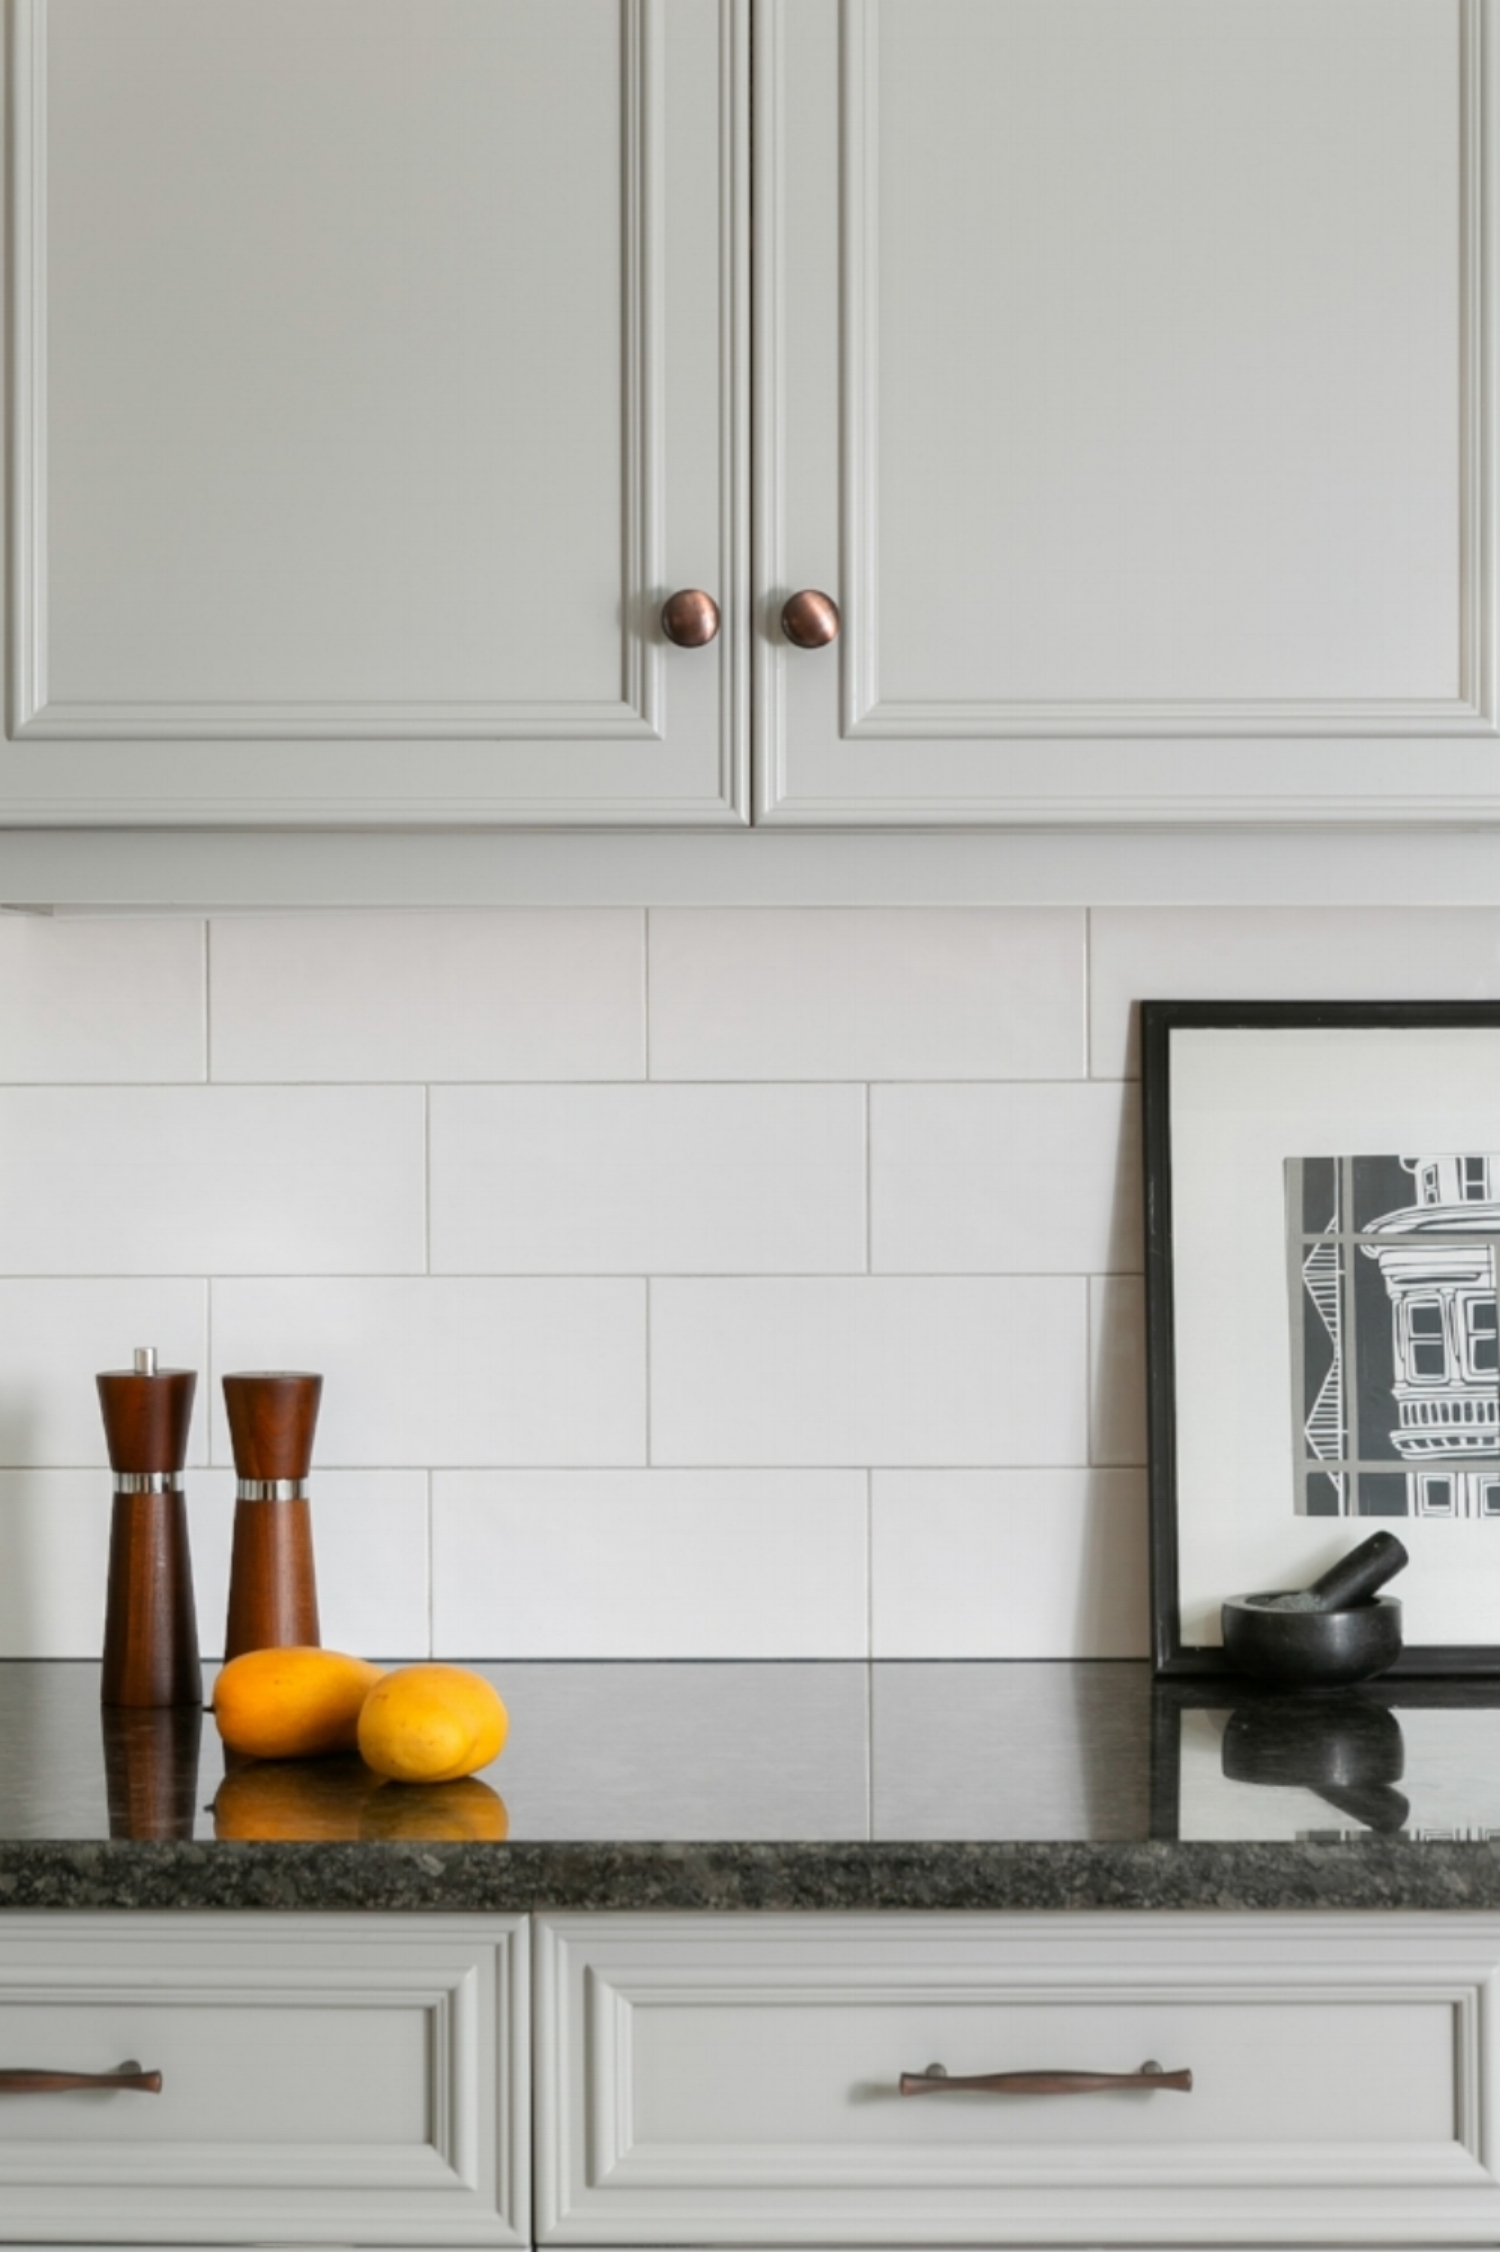 Medium gray cabinets add interest to the kitchen while providing a neutral pallette.